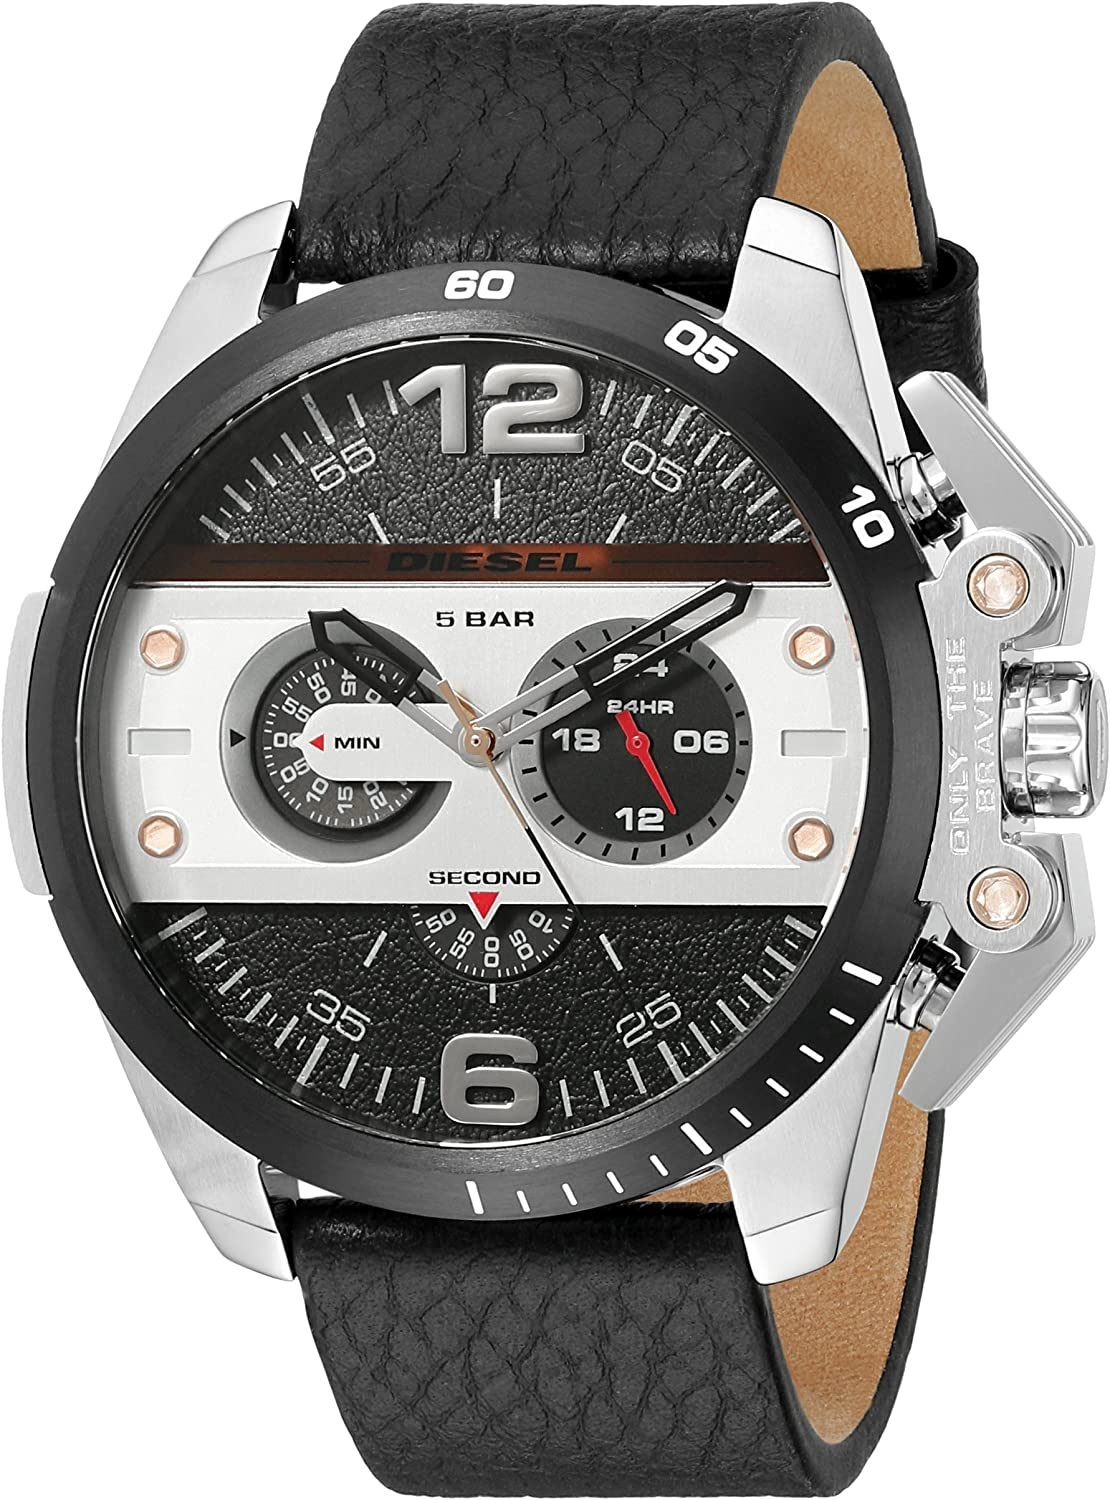 Diesel Men s DZ4361 Ironside Stainless Steel Watch with Black Leather Band